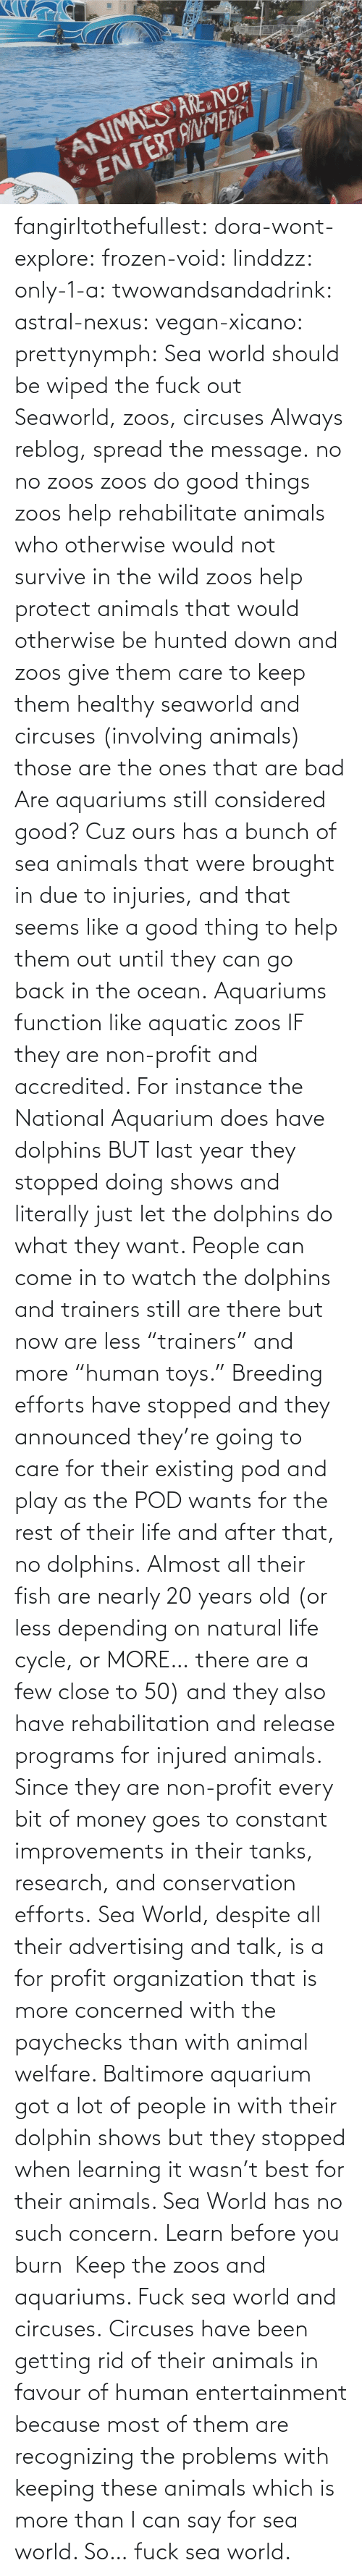 "Reblog: fangirltothefullest:  dora-wont-explore:  frozen-void:  linddzz:  only-1-a:  twowandsandadrink:  astral-nexus:  vegan-xicano:  prettynymph:  Sea world should be wiped the fuck out  Seaworld, zoos, circuses  Always reblog, spread the message.  no no zoos zoos do good things zoos help rehabilitate animals who otherwise would not survive in the wild zoos help protect animals that would otherwise be hunted down and zoos give them care to keep them healthy seaworld and circuses (involving animals) those are the ones that are bad  Are aquariums still considered good? Cuz ours has a bunch of sea animals that were brought in due to injuries, and that seems like a good thing to help them out until they can go back in the ocean.  Aquariums function like aquatic zoos IF they are non-profit and accredited. For instance the National Aquarium does have dolphins BUT last year they stopped doing shows and literally just let the dolphins do what they want. People can come in to watch the dolphins and trainers still are there but now are less ""trainers"" and more ""human toys."" Breeding efforts have stopped and they announced they're going to care for their existing pod and play as the POD wants for the rest of their life and after that, no dolphins. Almost all their fish are nearly 20 years old (or less depending on natural life cycle, or MORE… there are a few close to 50) and they also have rehabilitation and release programs for injured animals. Since they are non-profit every bit of money goes to constant improvements in their tanks, research, and conservation efforts. Sea World, despite all their advertising and talk, is a for profit organization that is more concerned with the paychecks than with animal welfare. Baltimore aquarium got a lot of people in with their dolphin shows but they stopped when learning it wasn't best for their animals. Sea World has no such concern.  Learn before you burn   Keep the zoos and aquariums. Fuck sea world and circuses.  Circuses have been getting rid of  their animals in favour of human entertainment because most of them are recognizing the problems with keeping these animals which is more than I can say for sea world. So… fuck sea world."